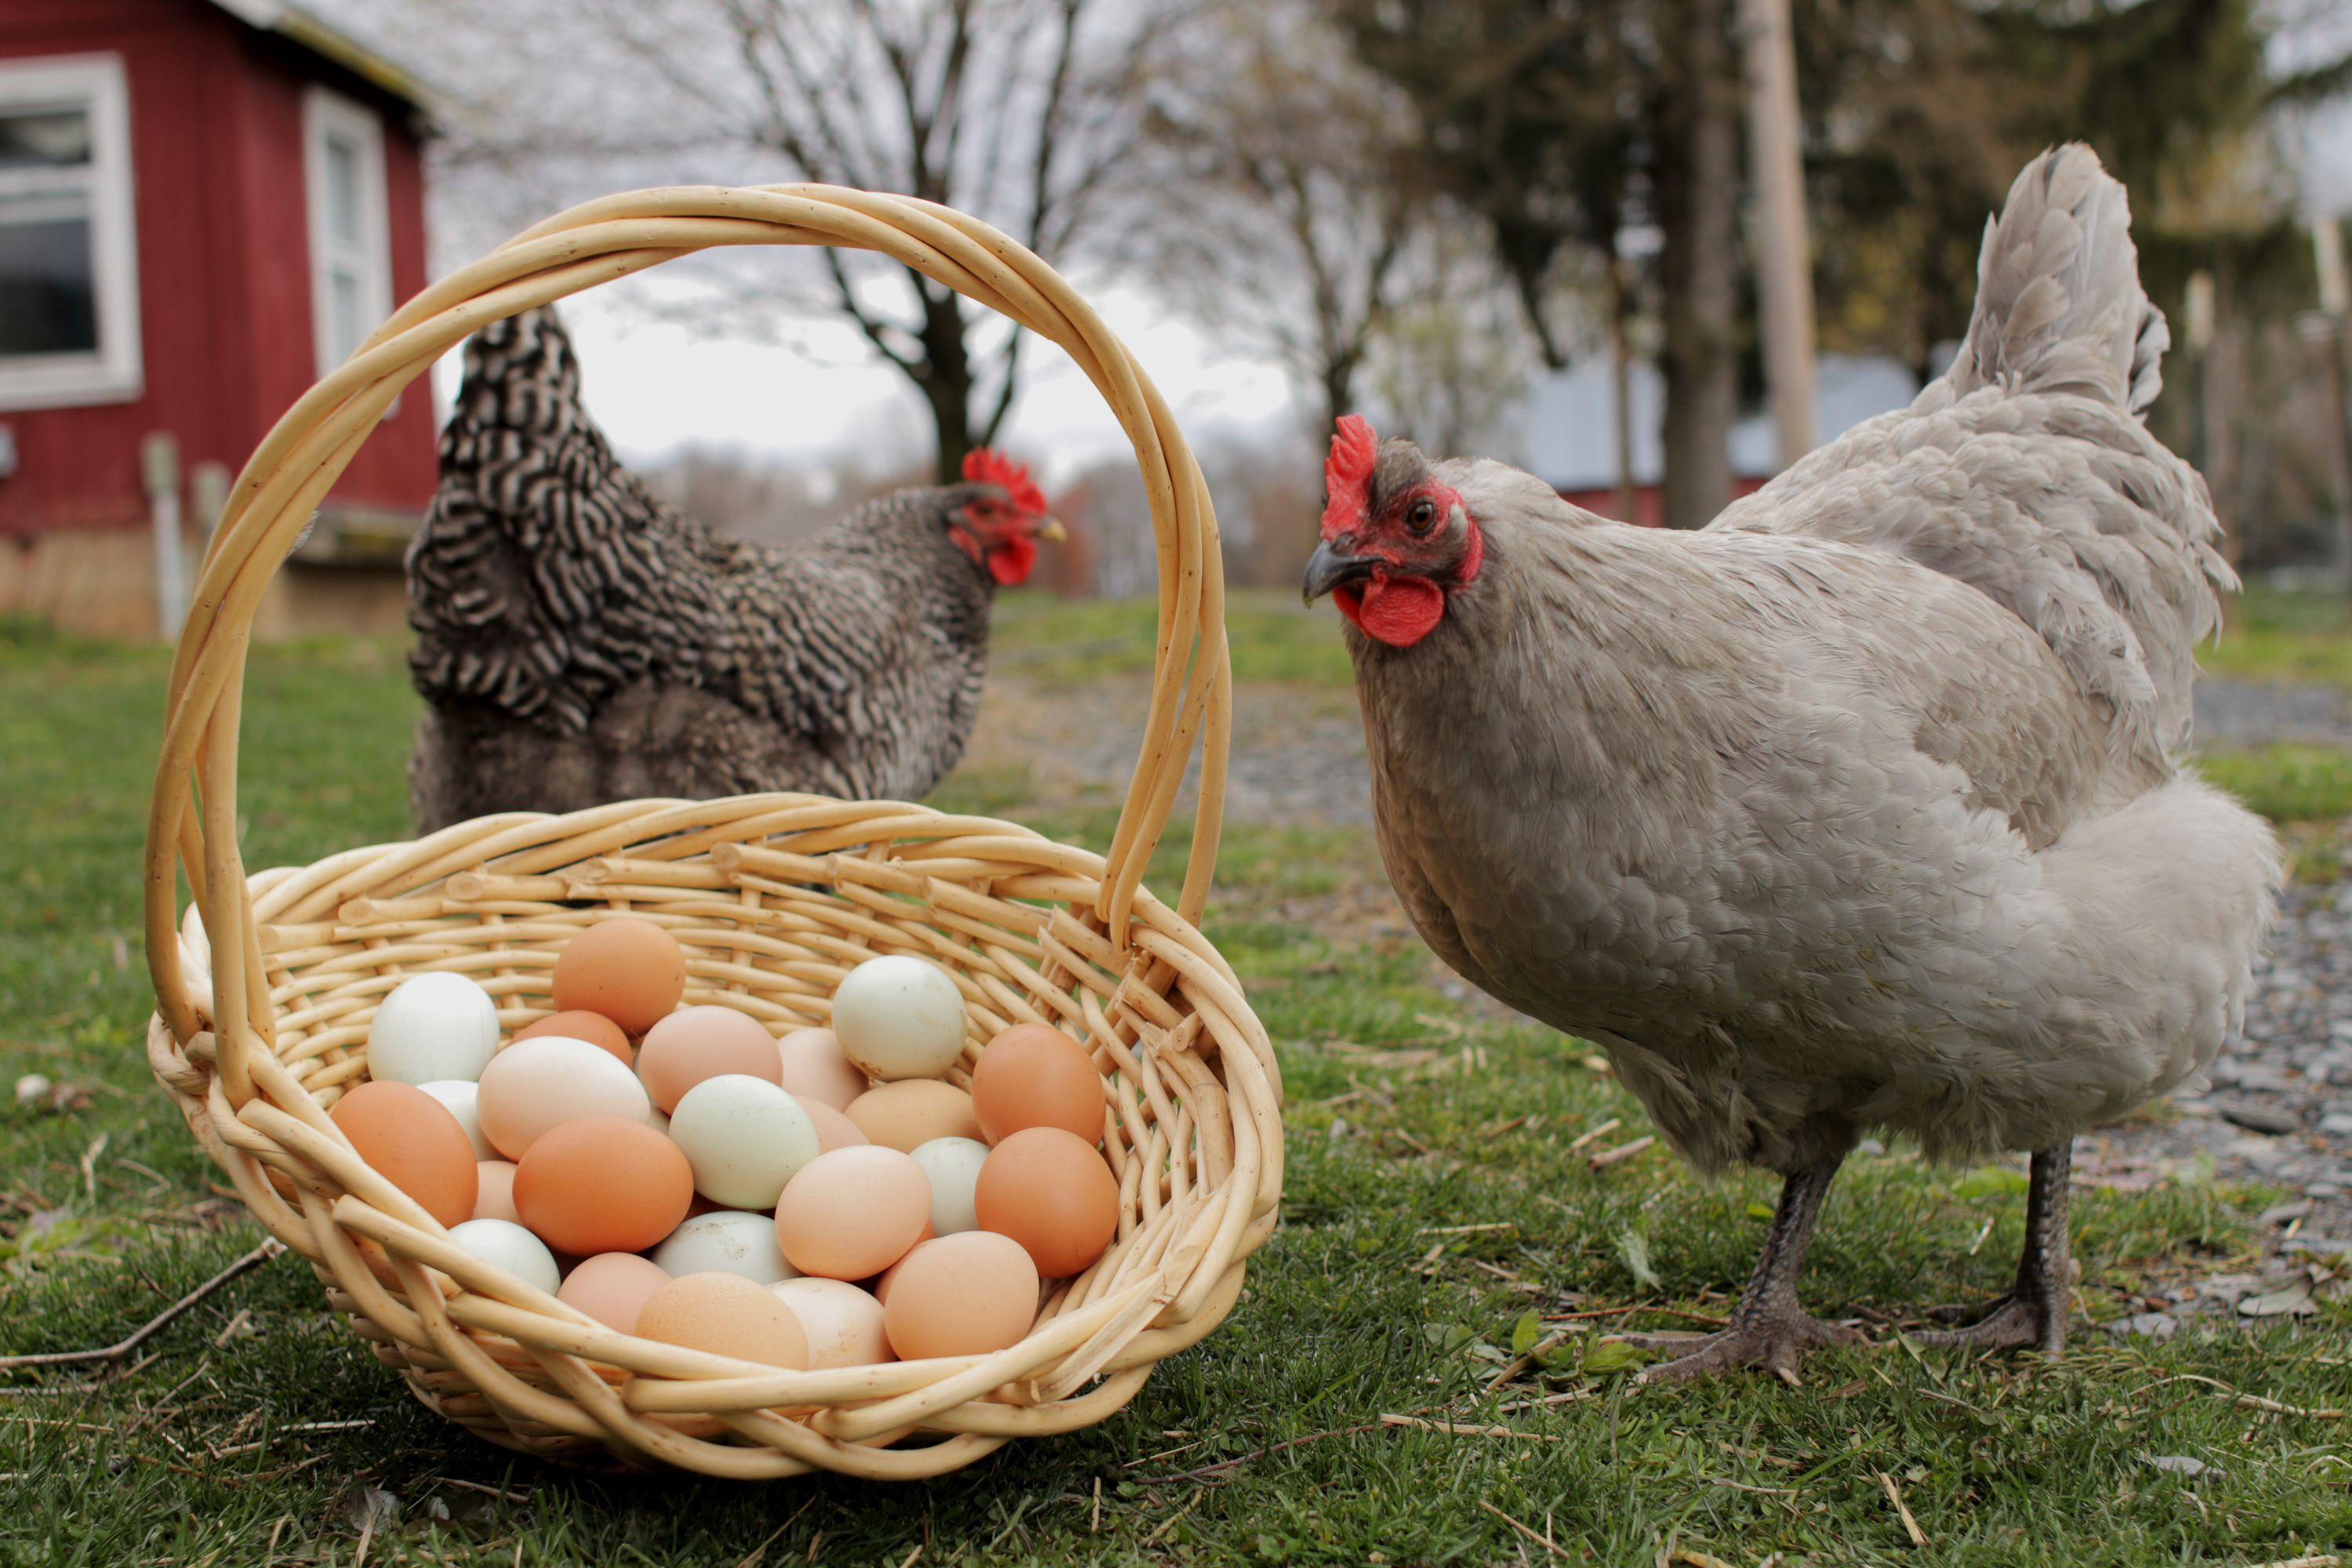 The Greatest Overview To How To Start Raising Backyard Chickens In 7 Simple Steps ...